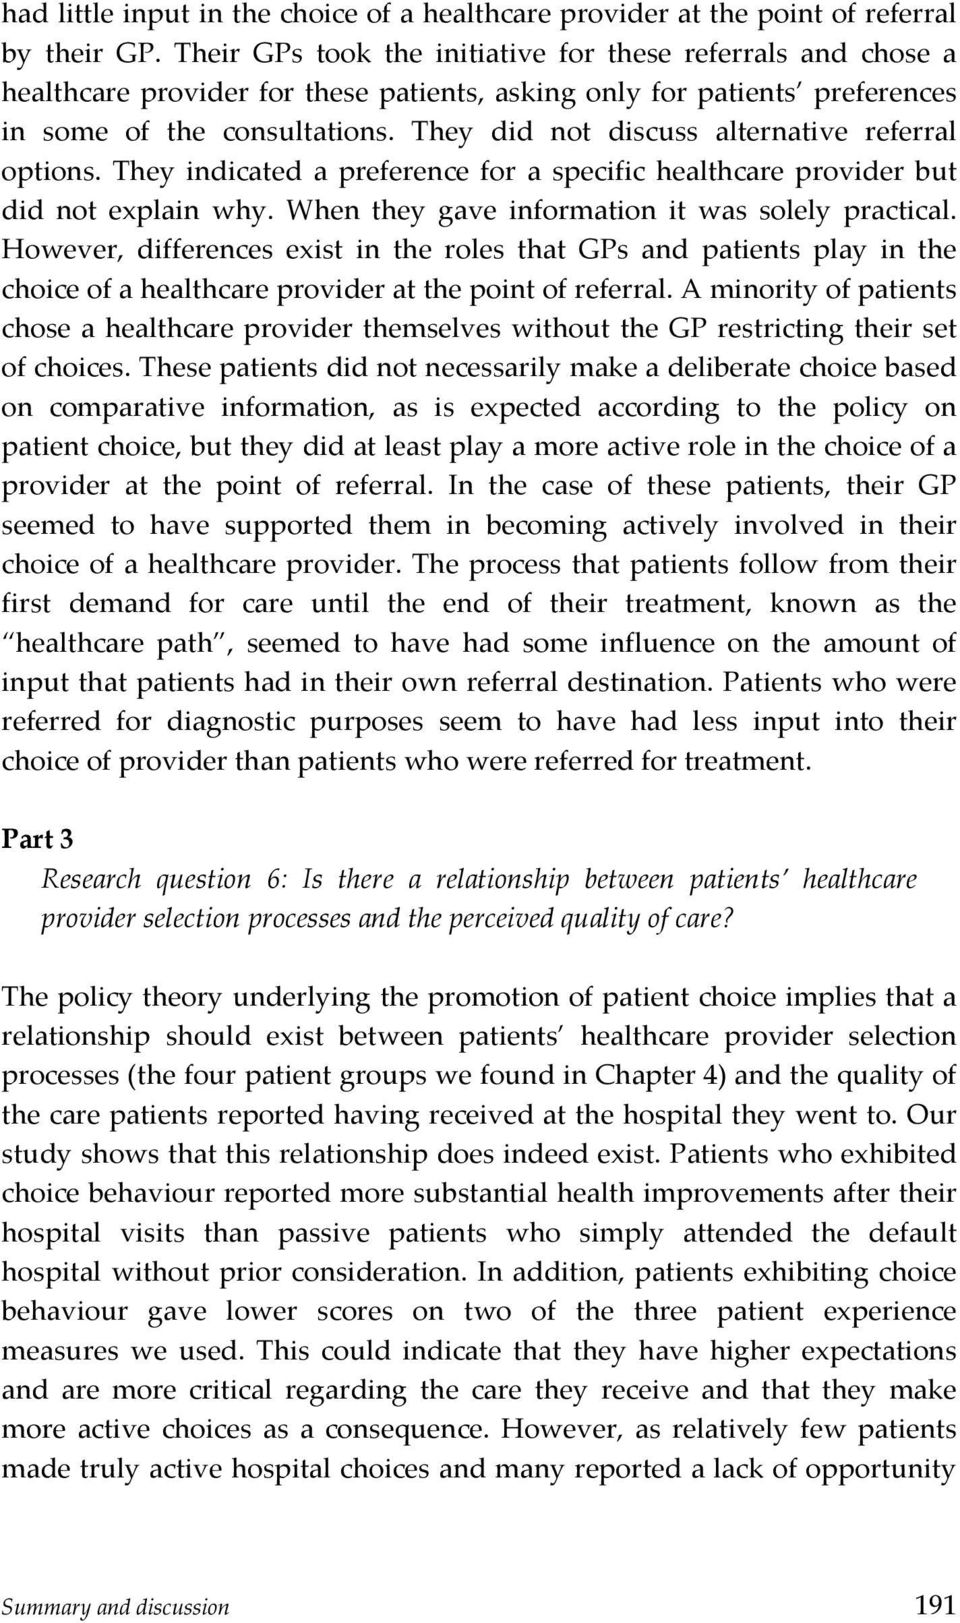 They did not discuss alternative referral options. They indicated a preference for a specific healthcare provider but did not explain why. When they gave information it was solely practical.